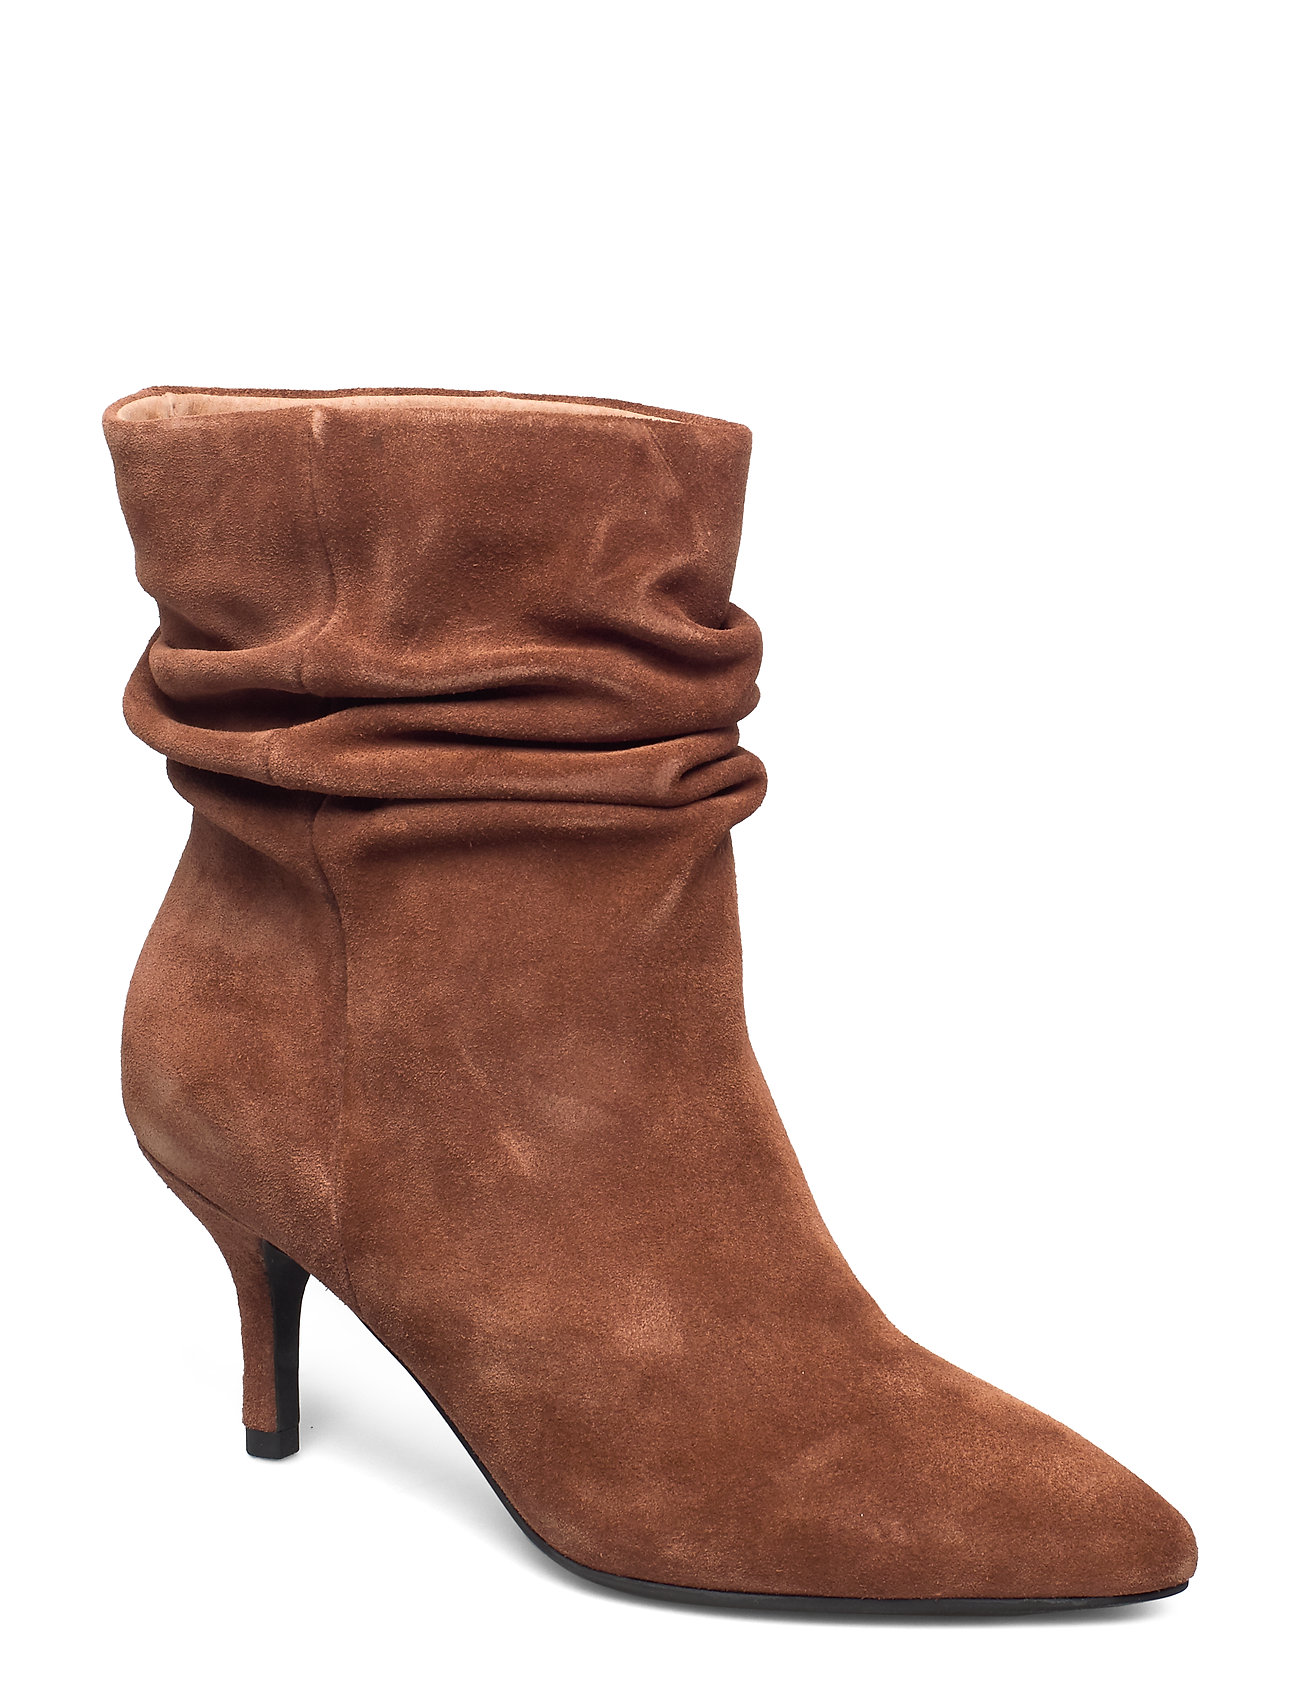 Image of Agnete Slouchy Shoes Boots Ankle Boots Ankle Boot - Heel Brun Shoe The Bear (3406190557)